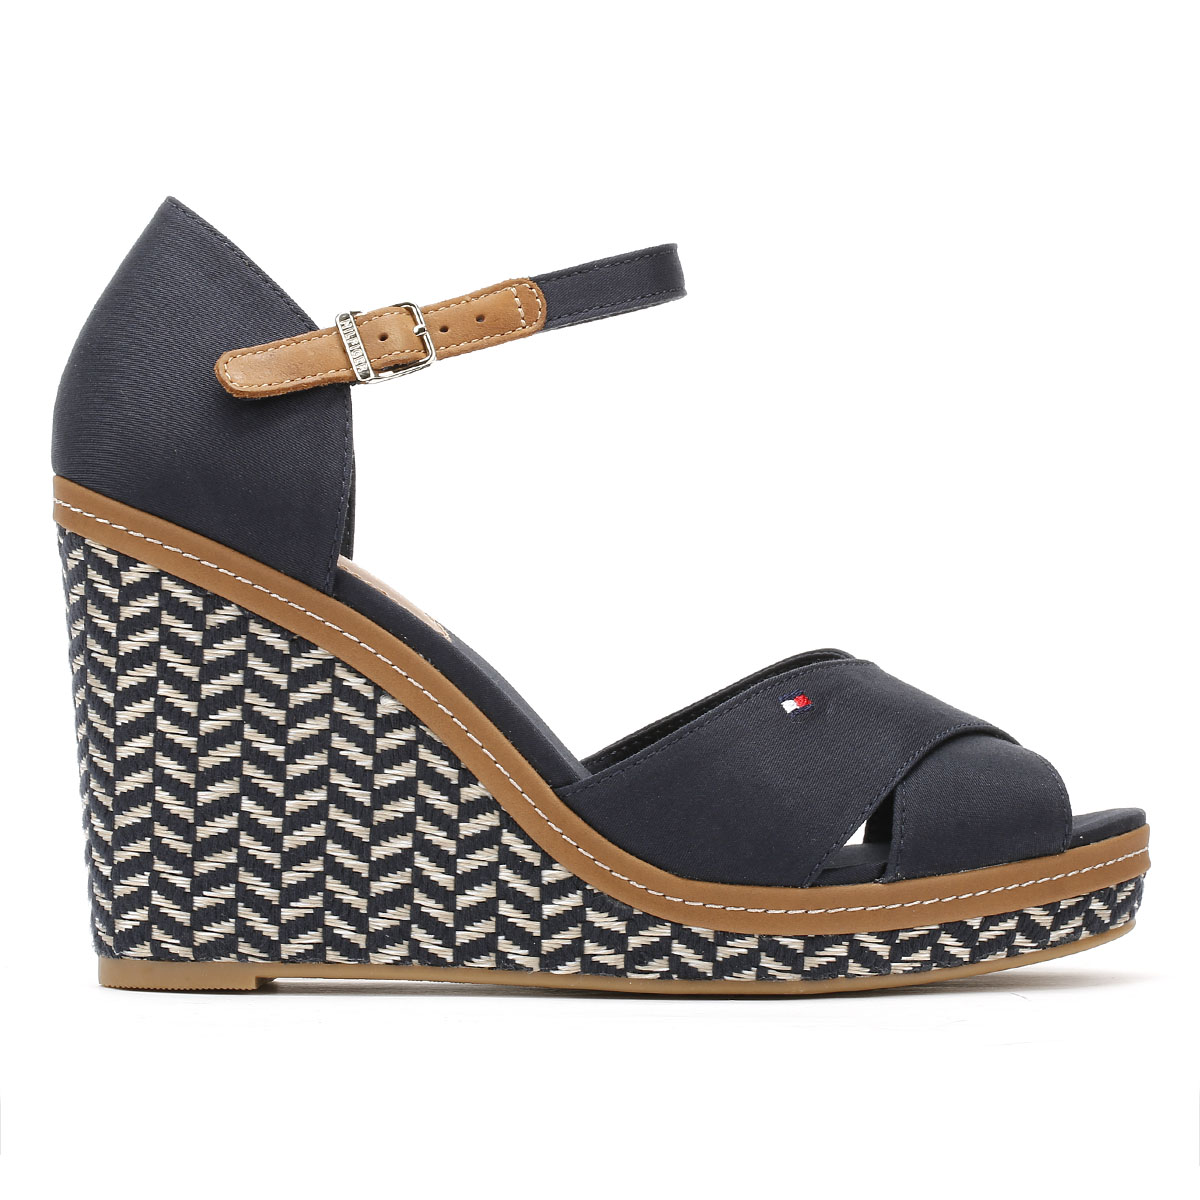 1f0f0f1569d56d Made of a textile and leather mix upper and adjustable ankle strap.  Complete with signature Tommy Hilfiger branding. 10cm heel height.